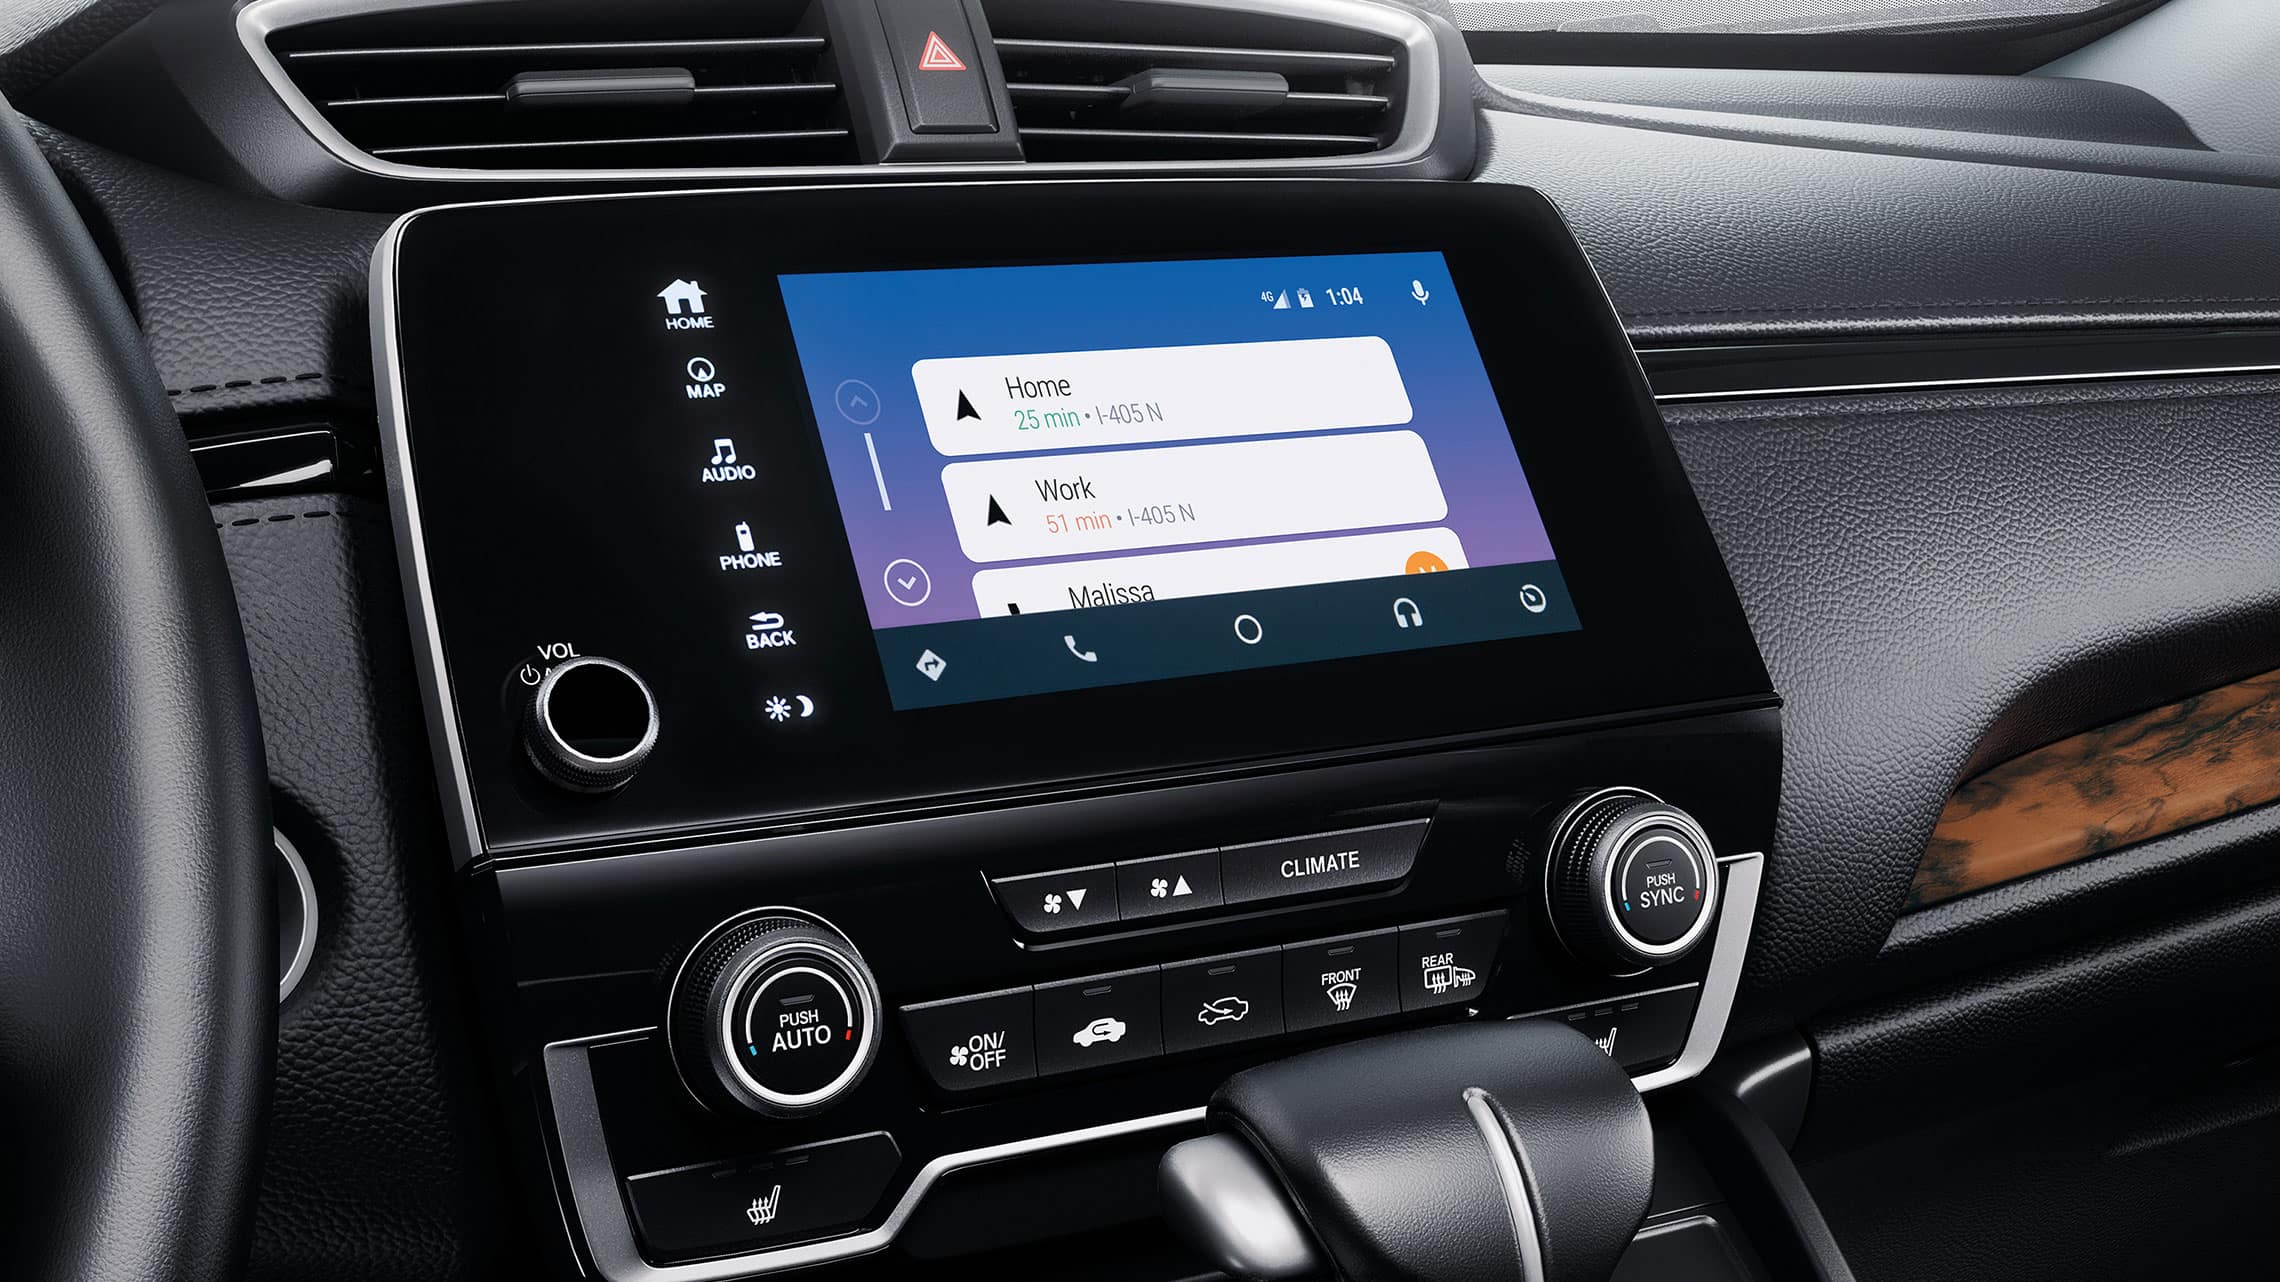 Android Auto™ integration menu detail on the Display Audio touch-screen in the 2020 Honda CR-V.